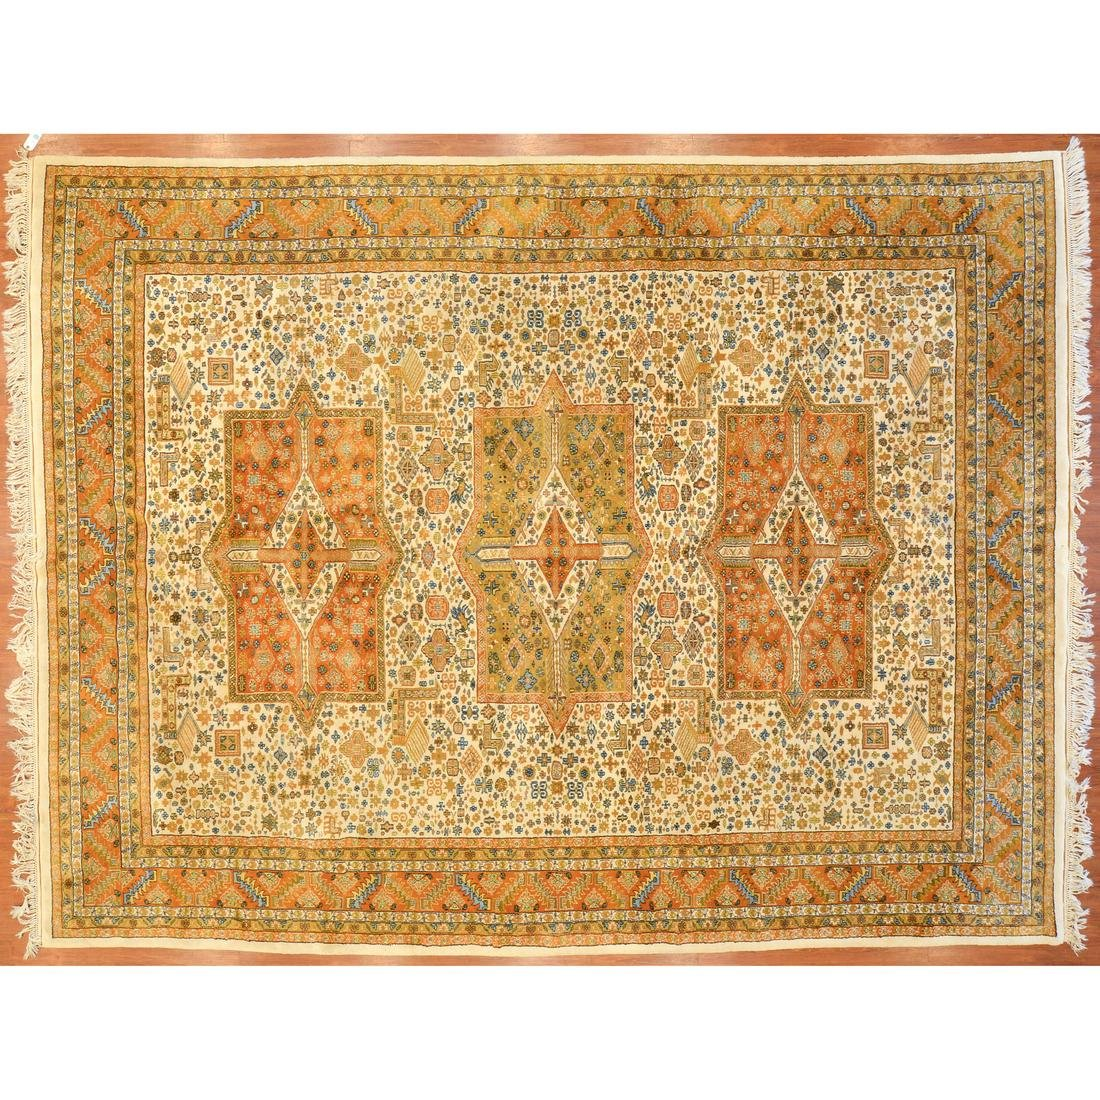 Indo Jaipur Kazak Carpet, India, 10.4 x 13.4